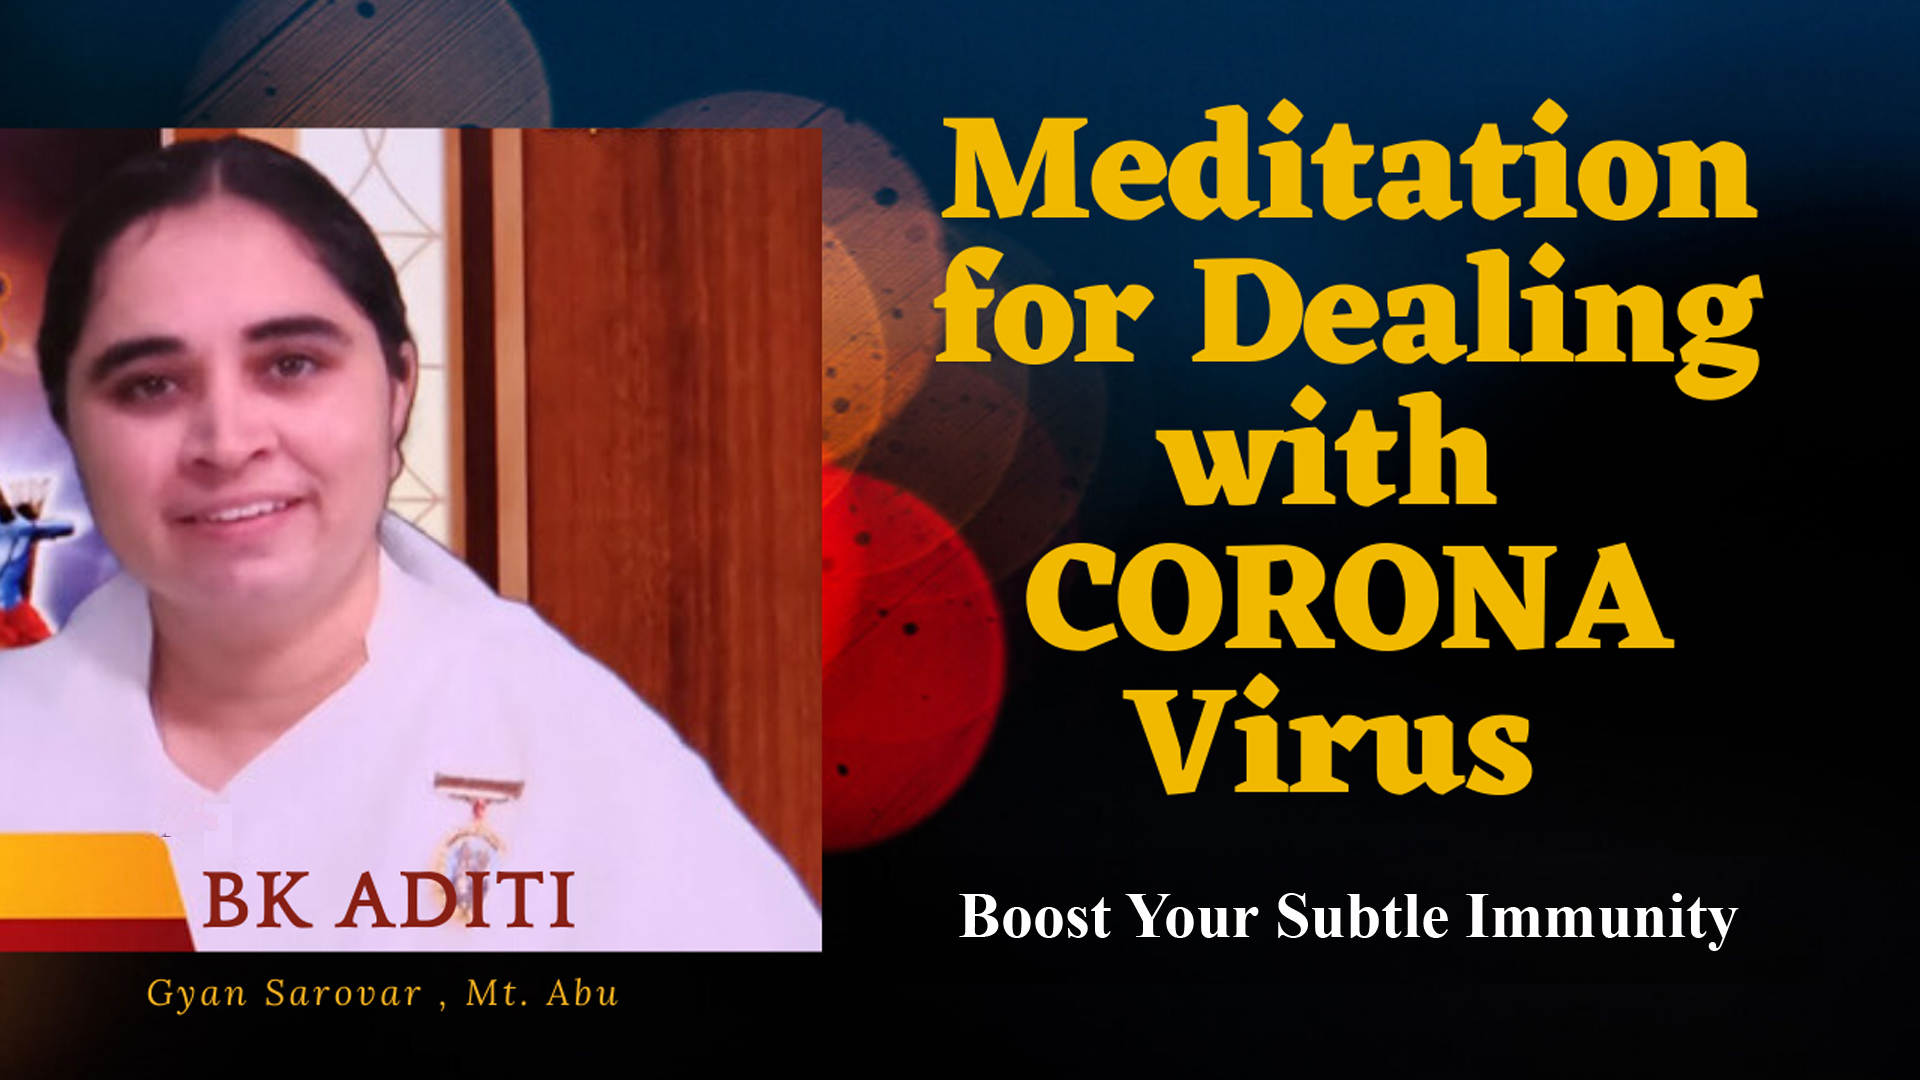 Meditation for dealing with Coronavirus by BK Aditi